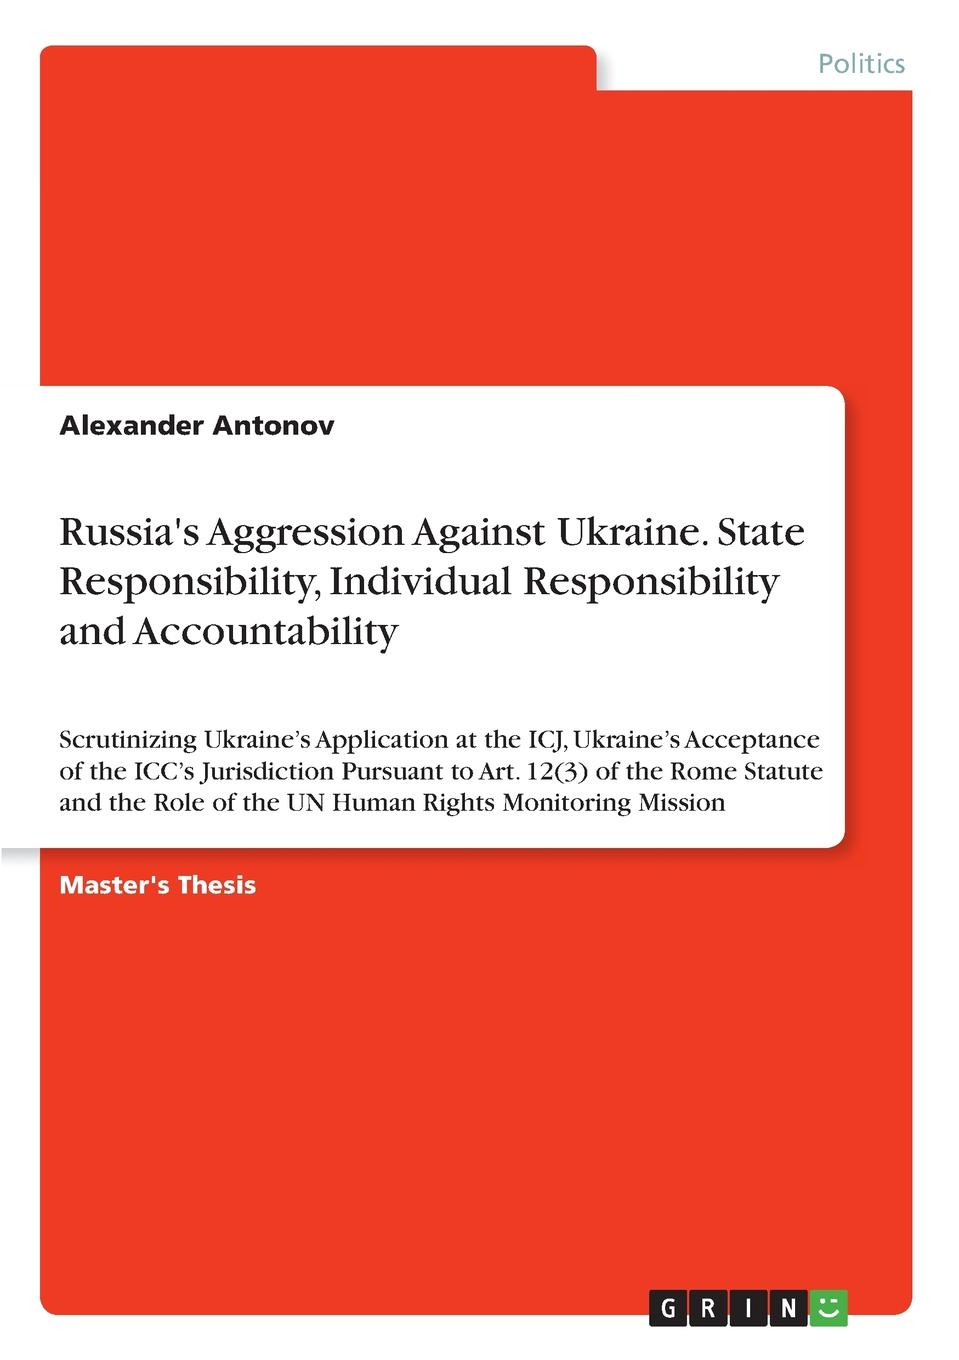 Alexander Antonov Russia.s Aggression Against Ukraine. State Responsibility, Individual Responsibility and Accountability 1917 russia s red year